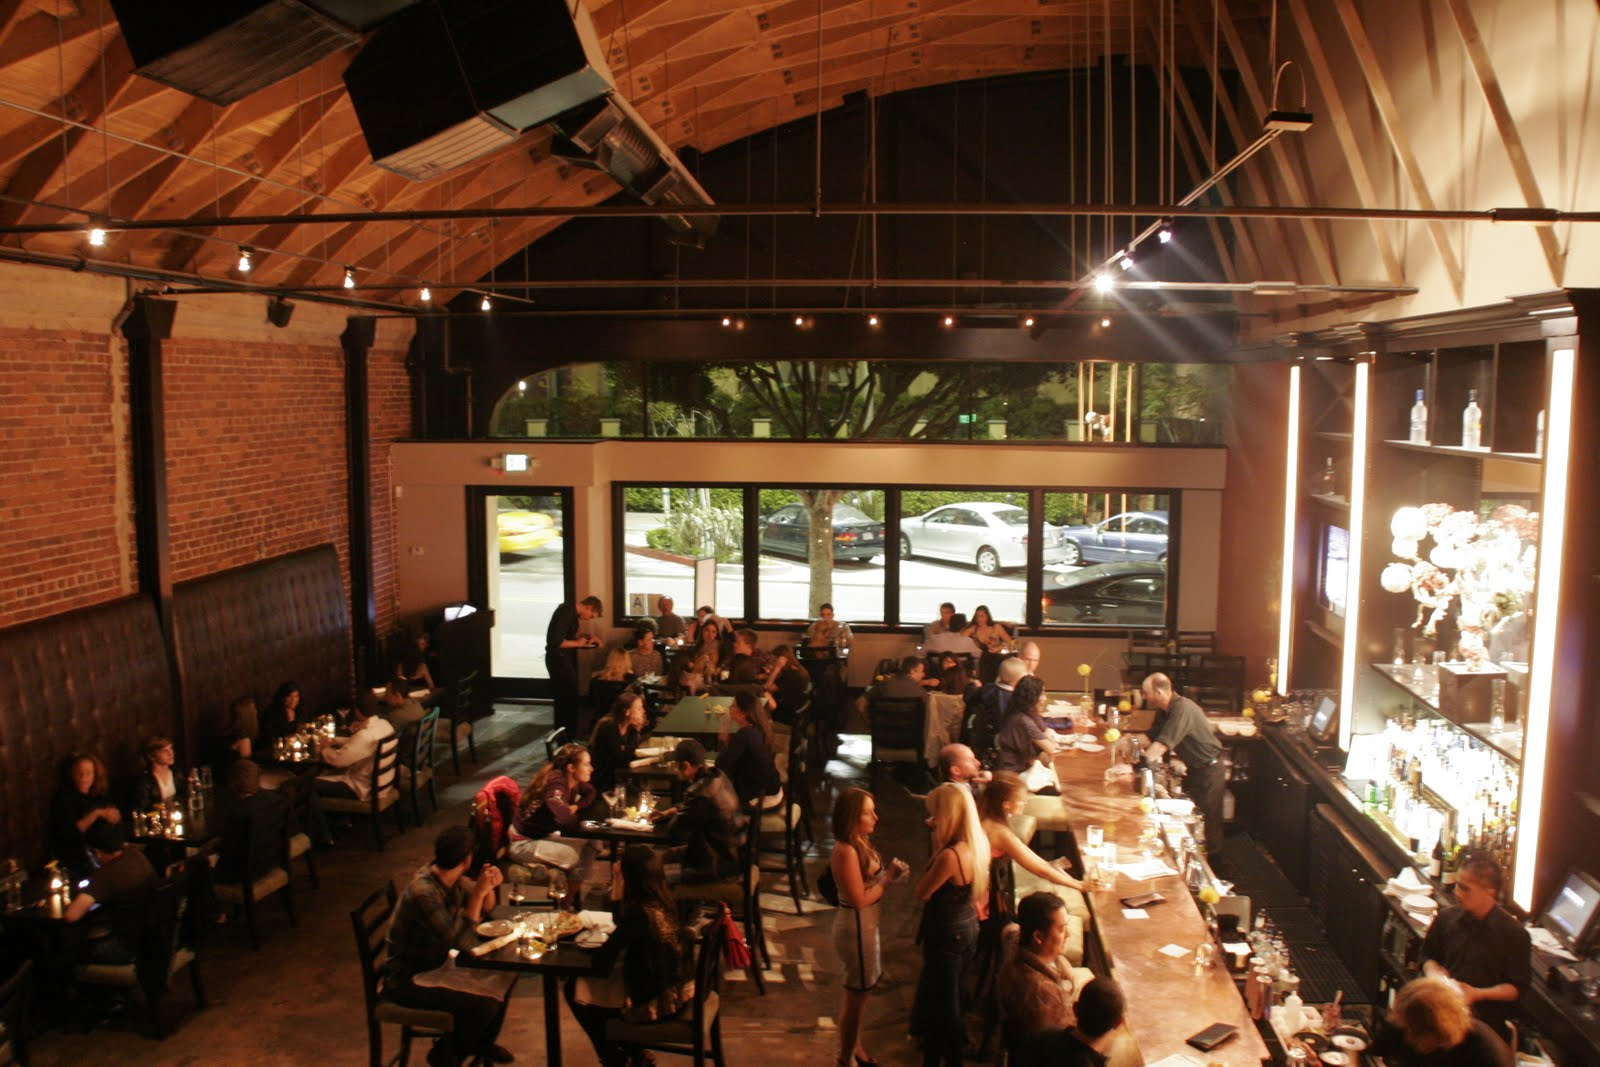 Dorky Cooking Restaurant Review The Glendon Bar and Kitchen